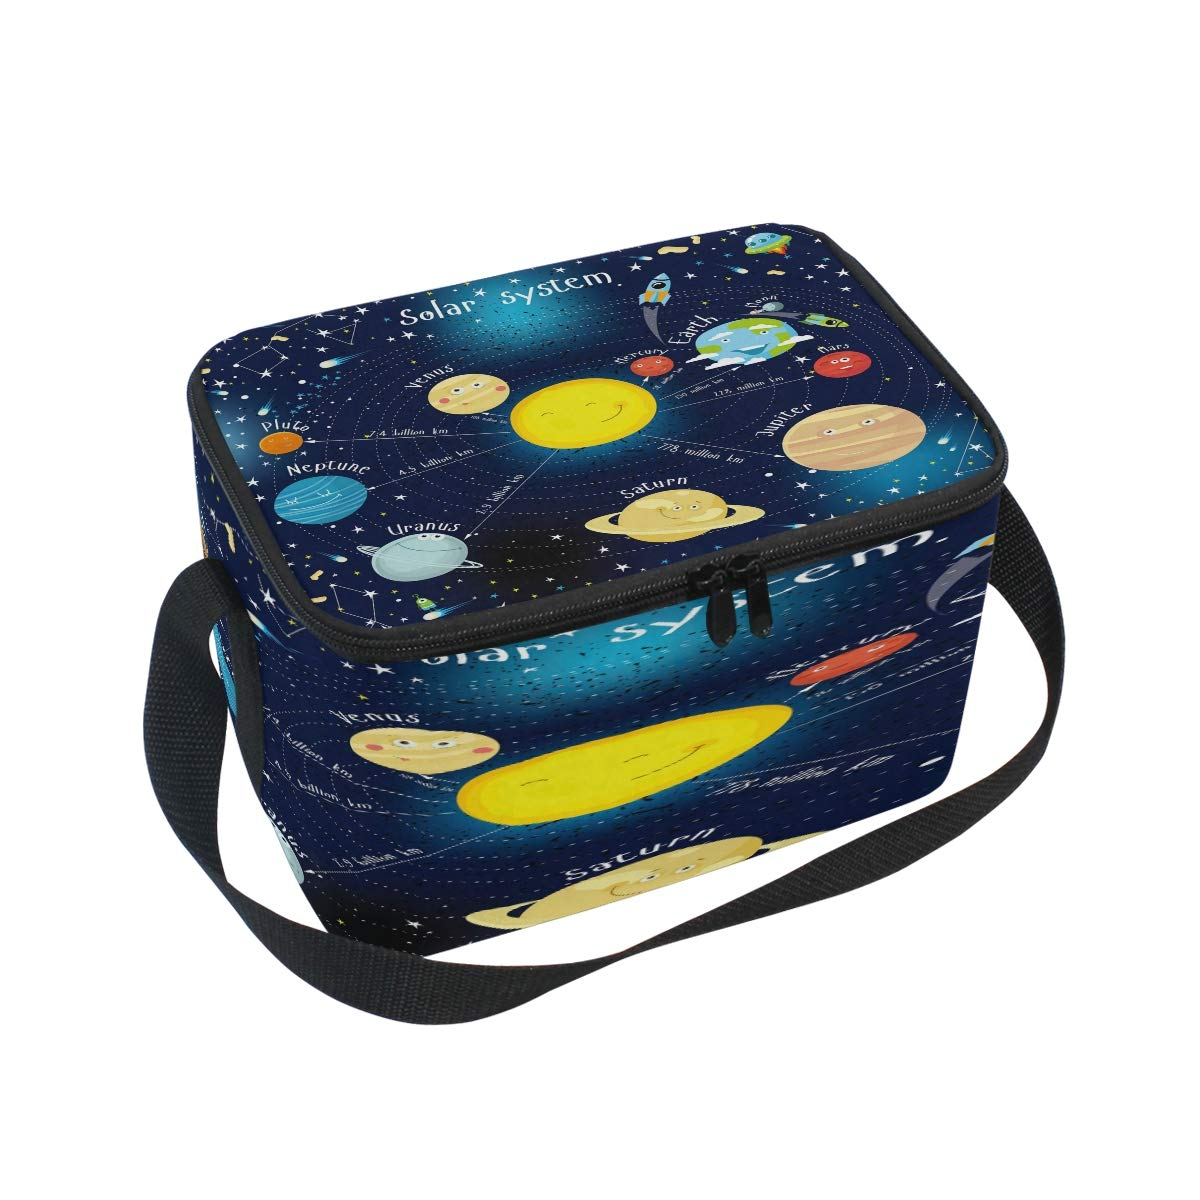 Use4 Solar System Space Galaxy Insulated Lunch Bag Tote Bag Cooler Lunchbox for Picnic School Women Men Kids